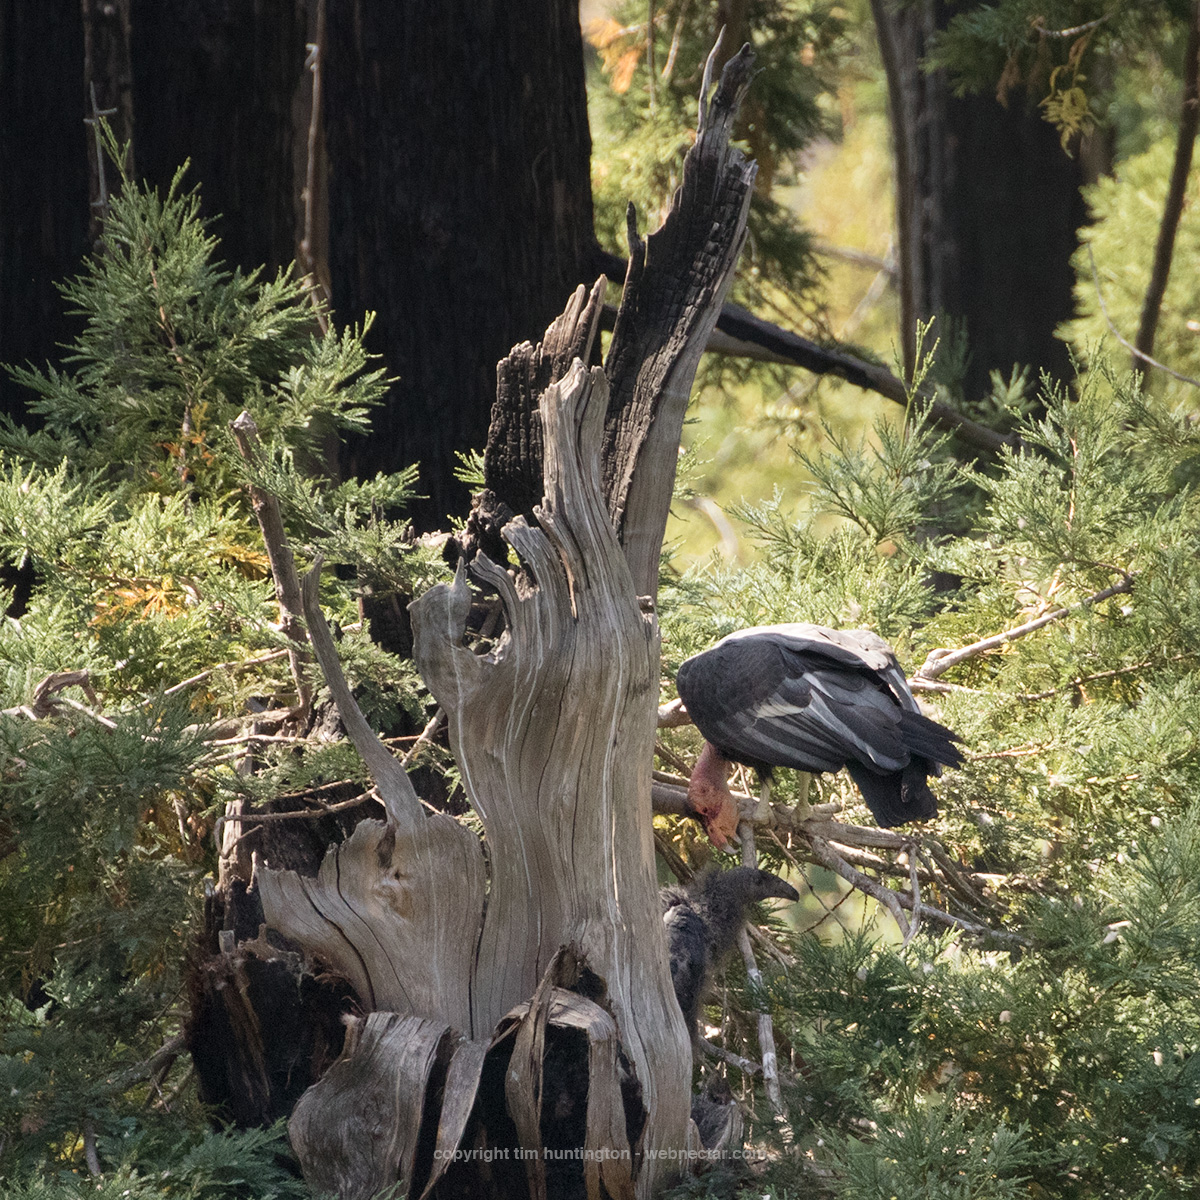 California condor 204 Amigo tends to his current nestling, condor 1003, in their redwood tree nest cavity in Big Sur.